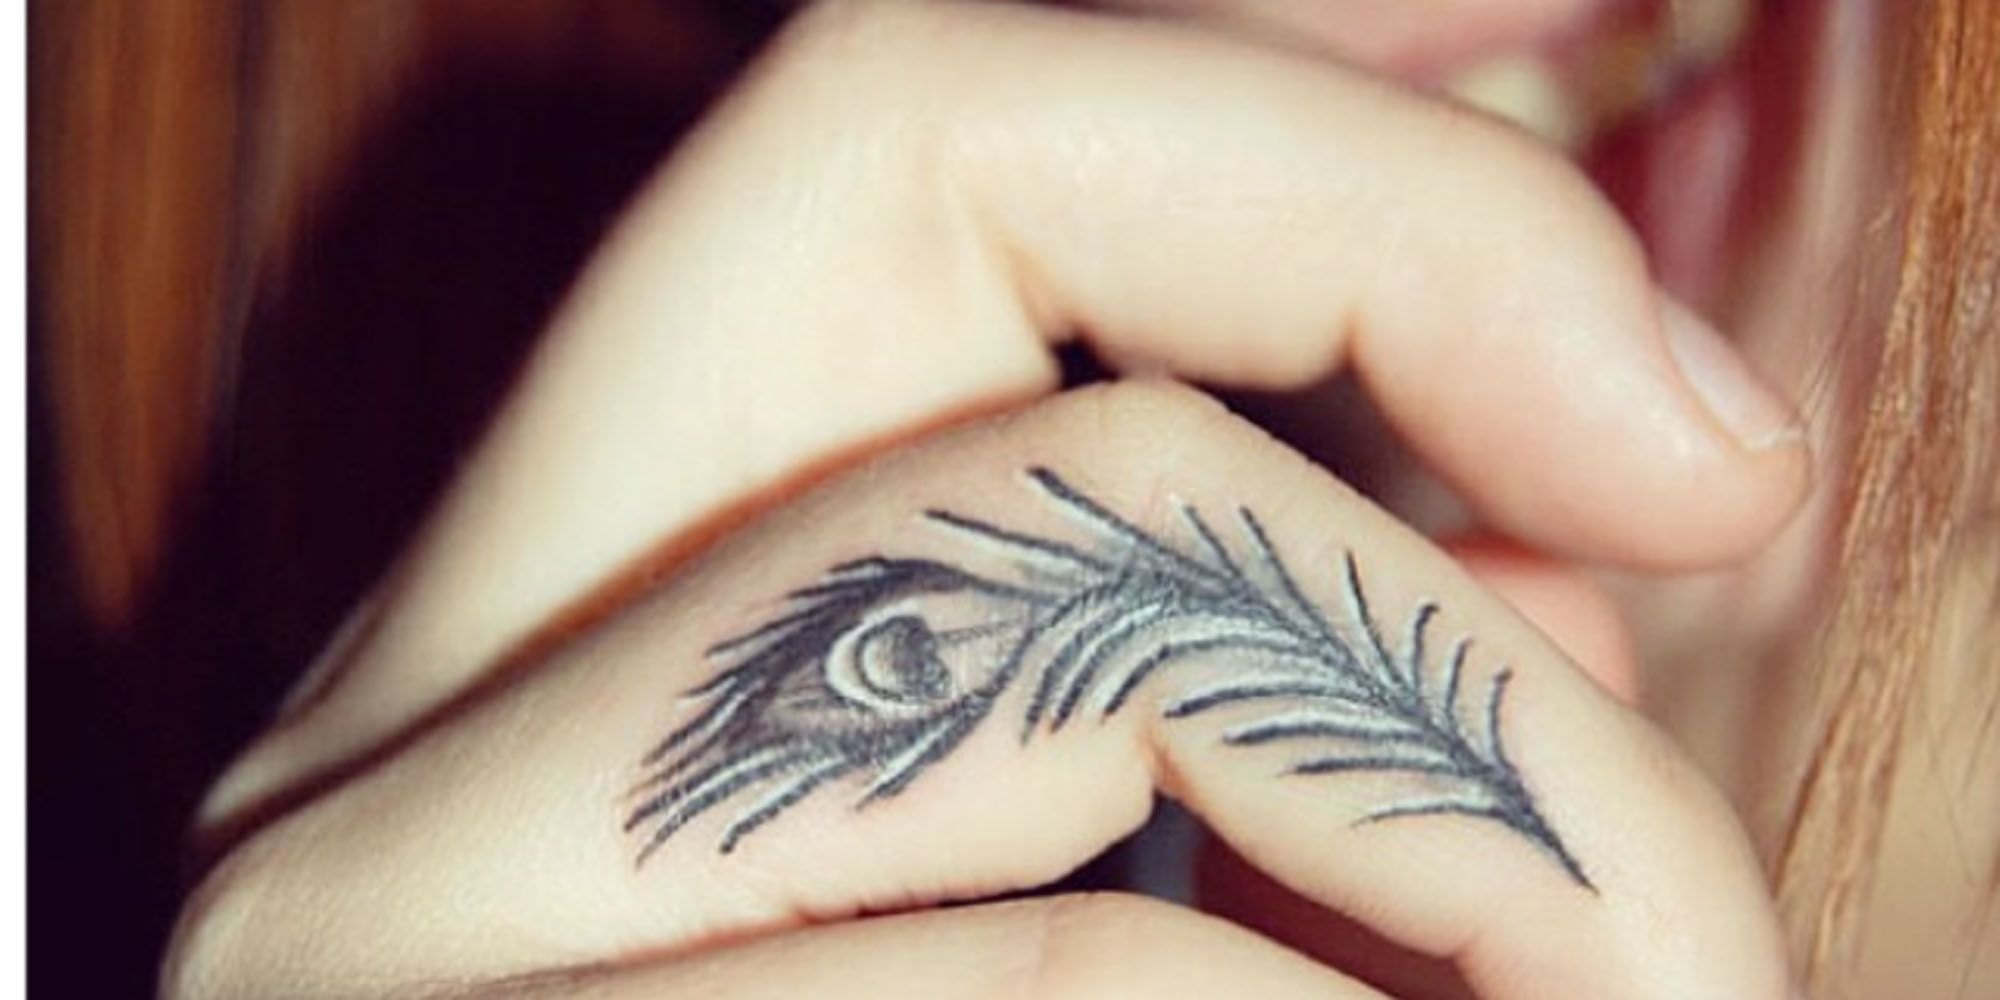 28 Tiny Finger Tattoo Ideas Welcome to our tattoo design photo/sketch gallery site! 28 tiny finger tattoo ideas